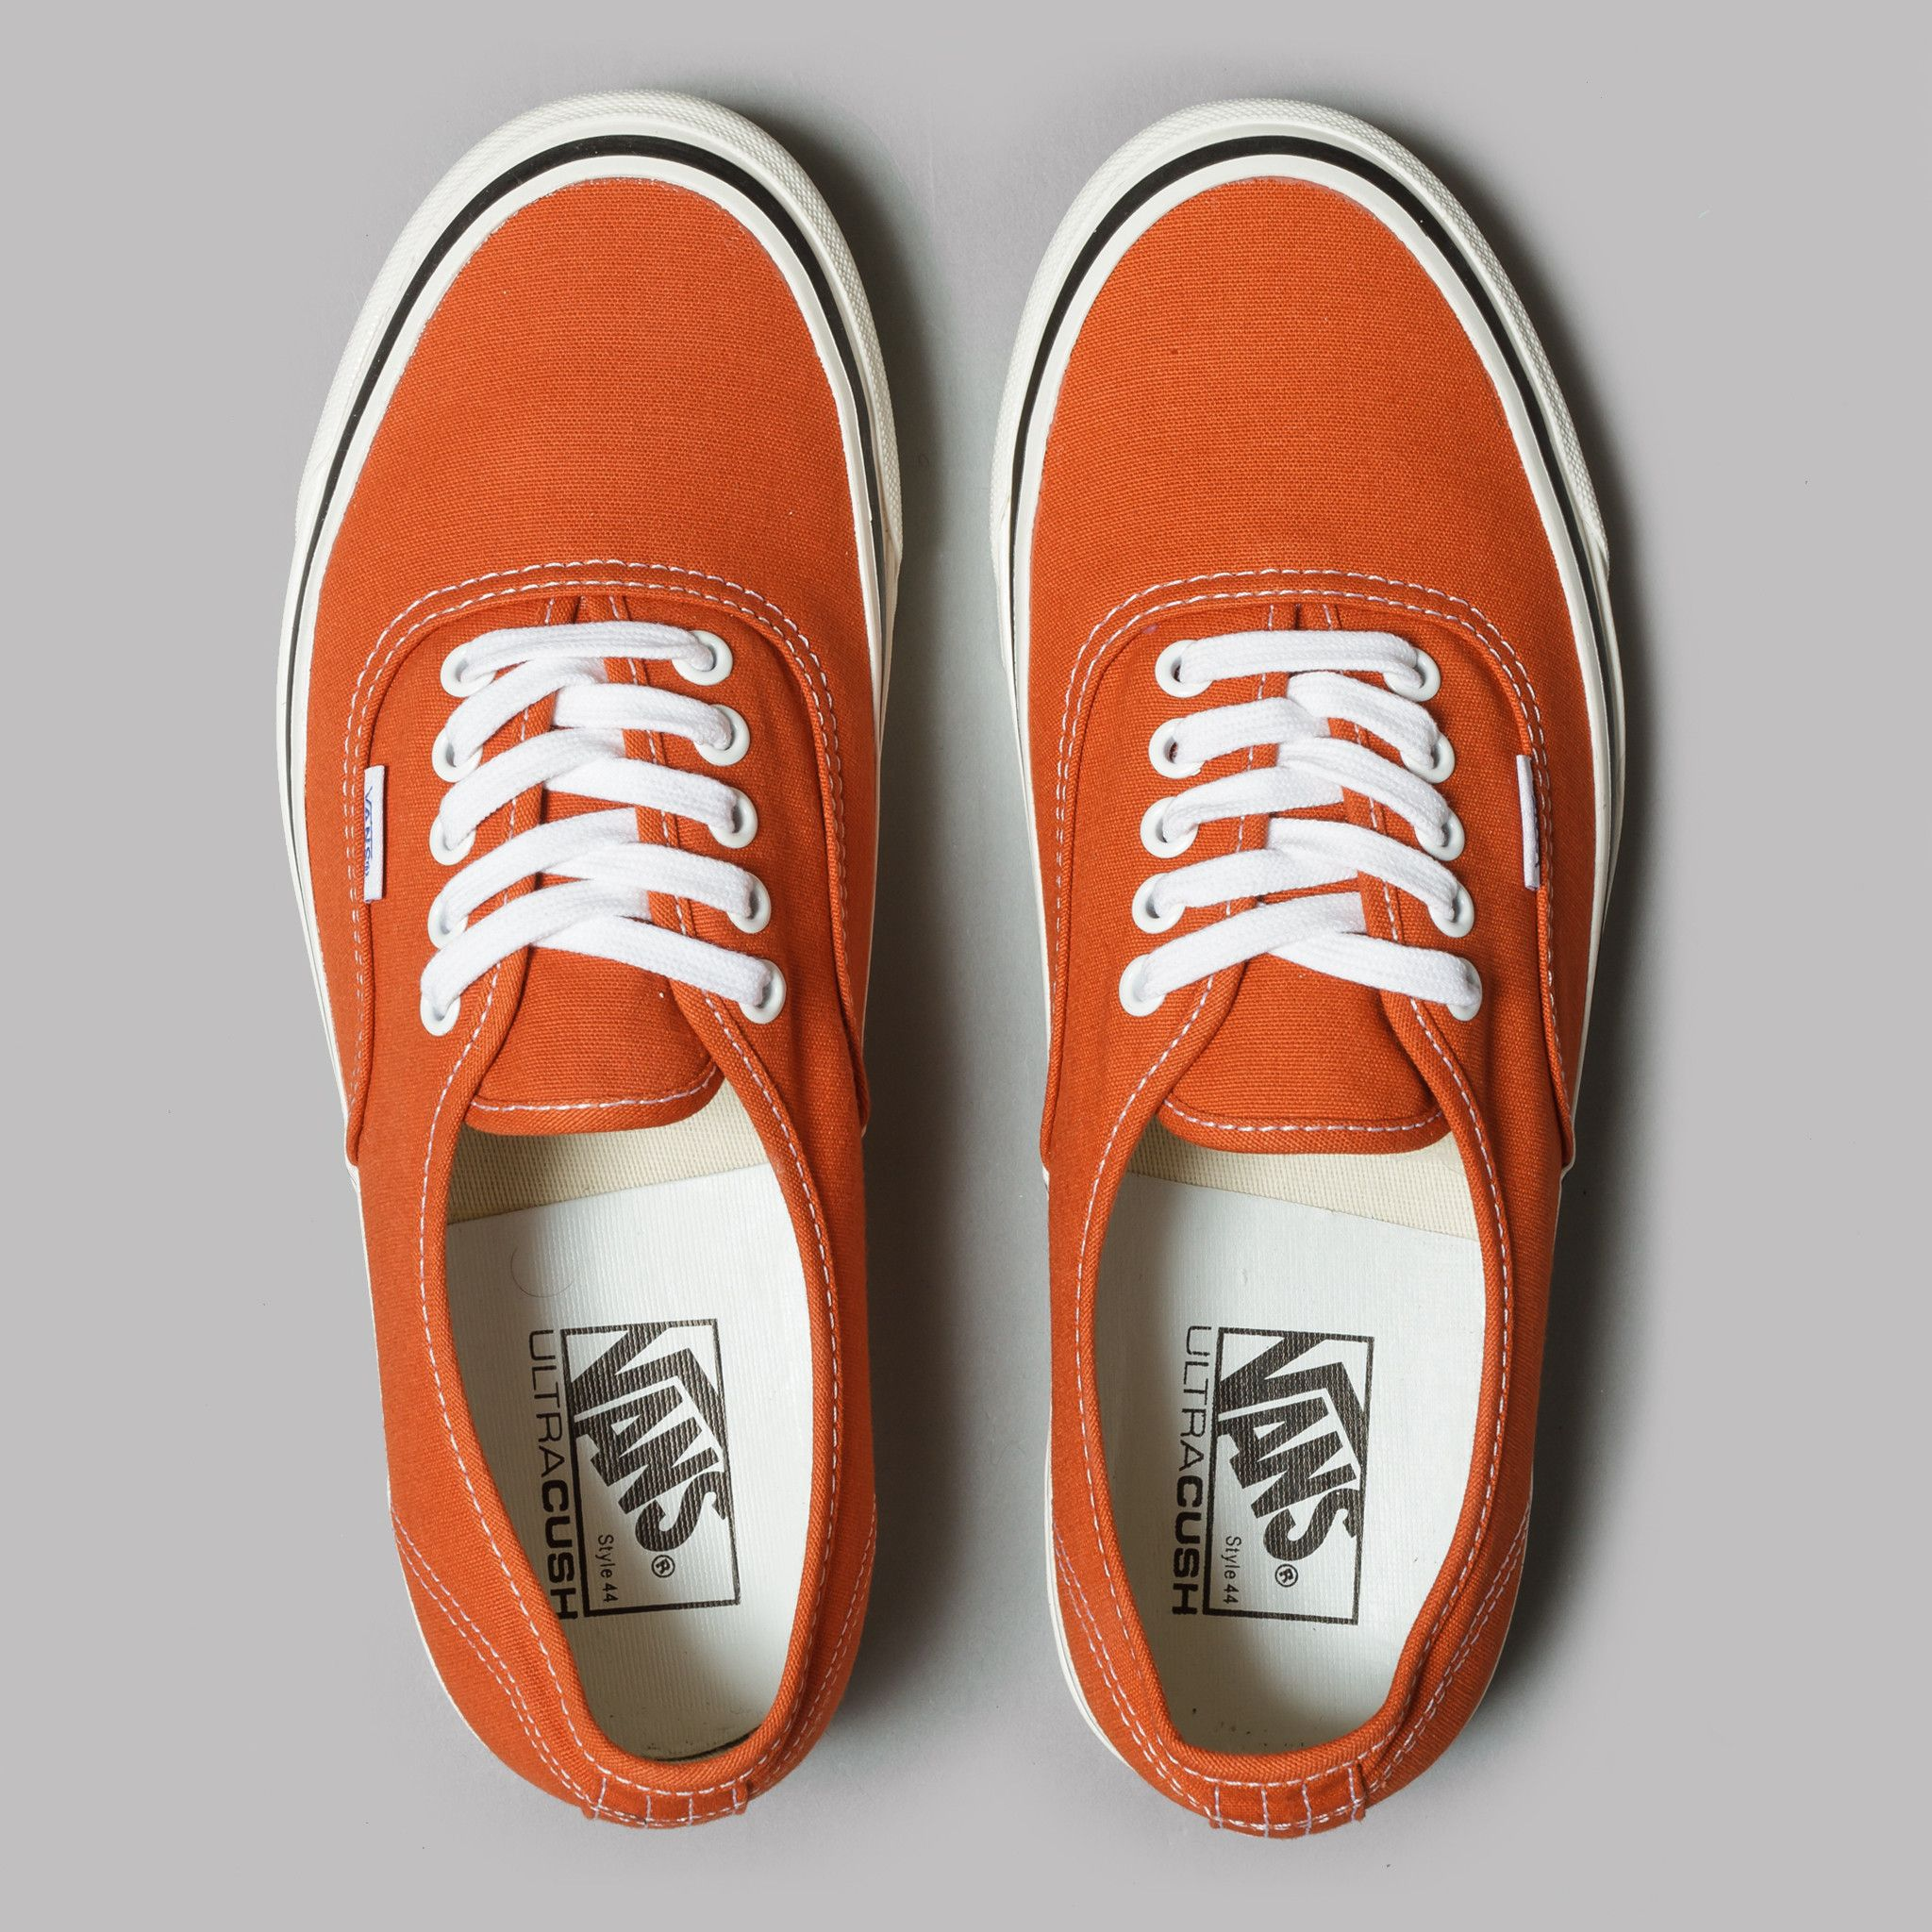 b18c542229080e Vans Authentic 44 DX Anaheim Factory (Orange) | S H O E S | Vans ...